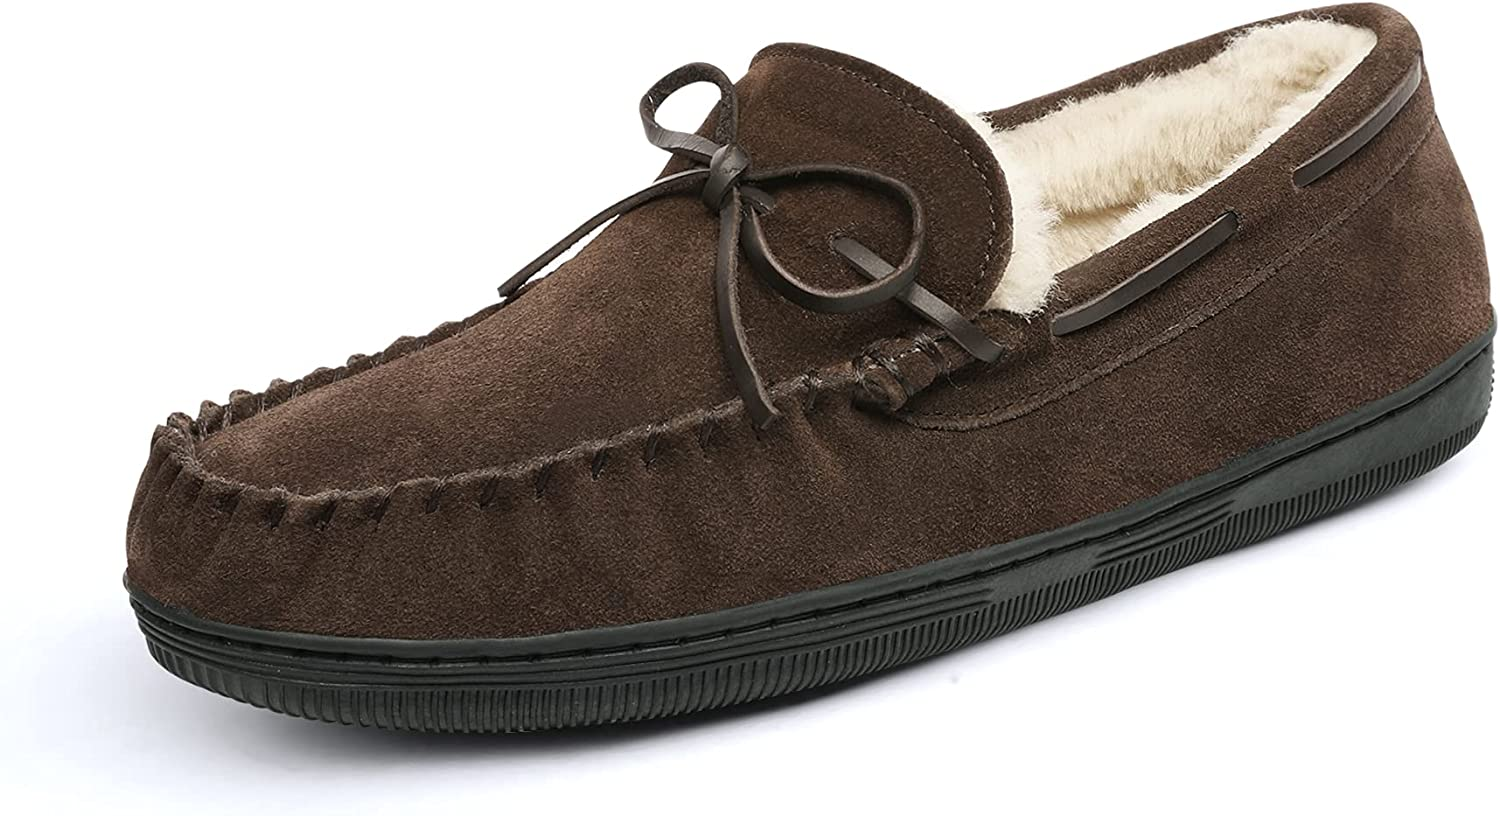 DREAM PAIRS Men's Fur-Loafer-01 Slippers Shoes Luxury goods San Antonio Mall Suede Loafers